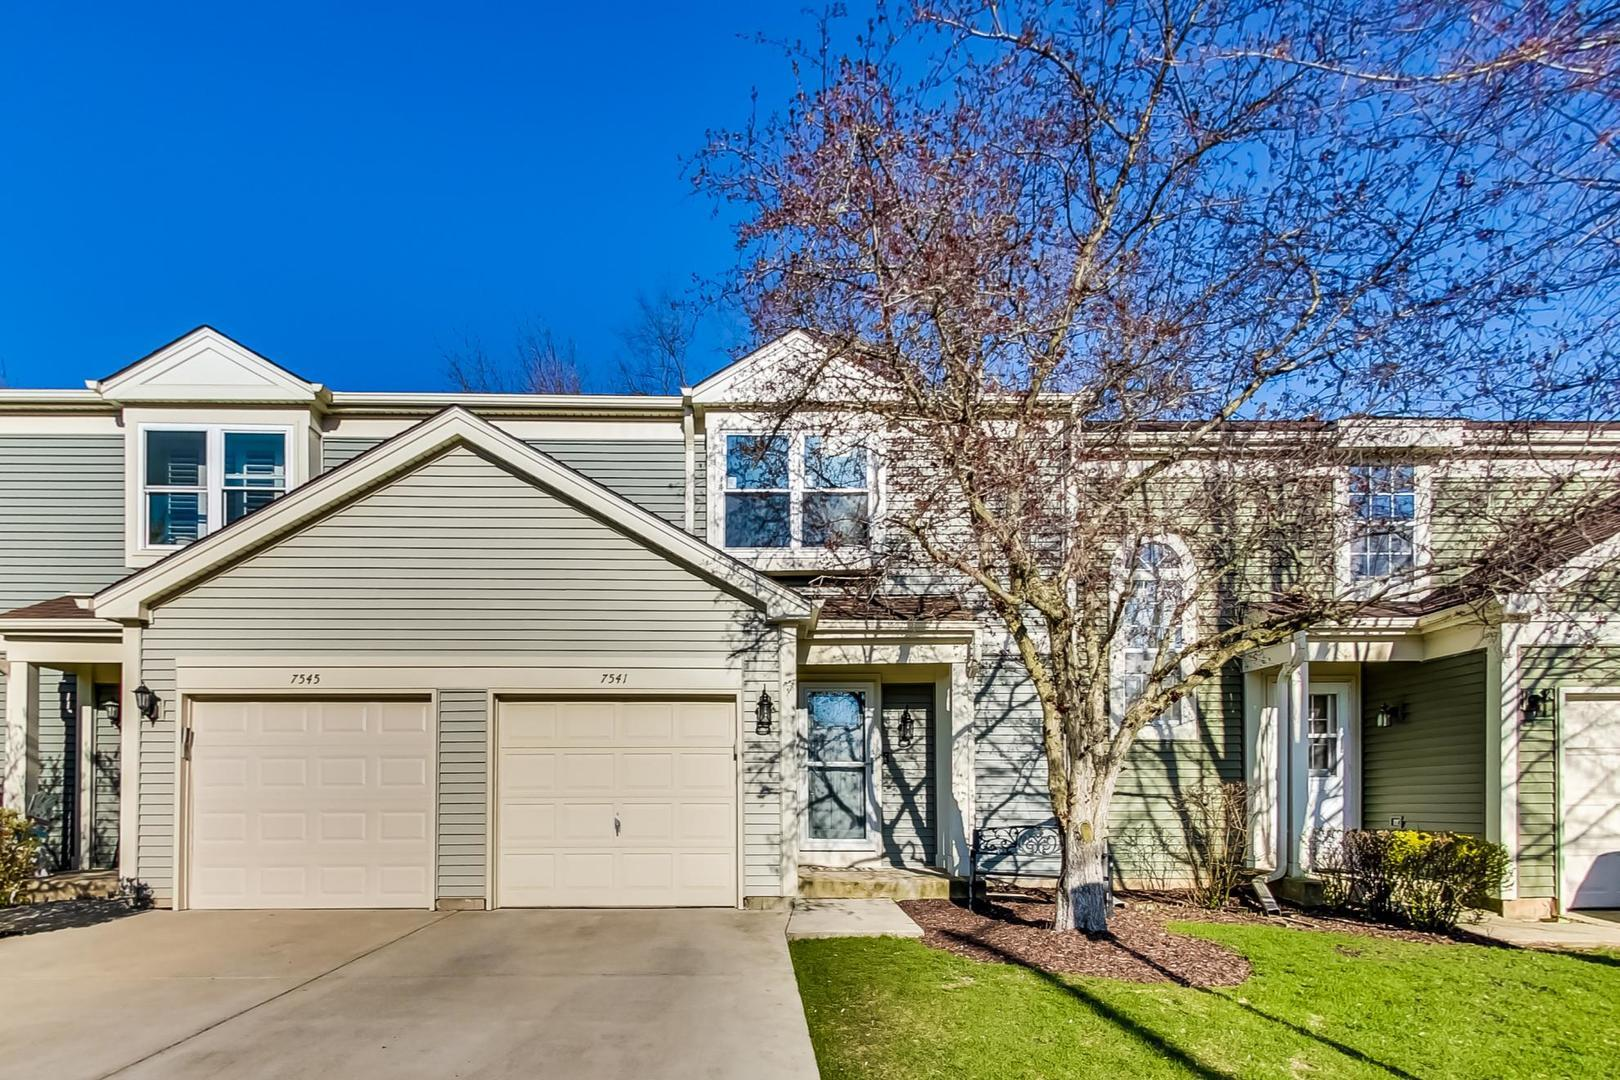 7541 Wedgewood Drive, Hanover Park, IL 60133 - #: 10698306